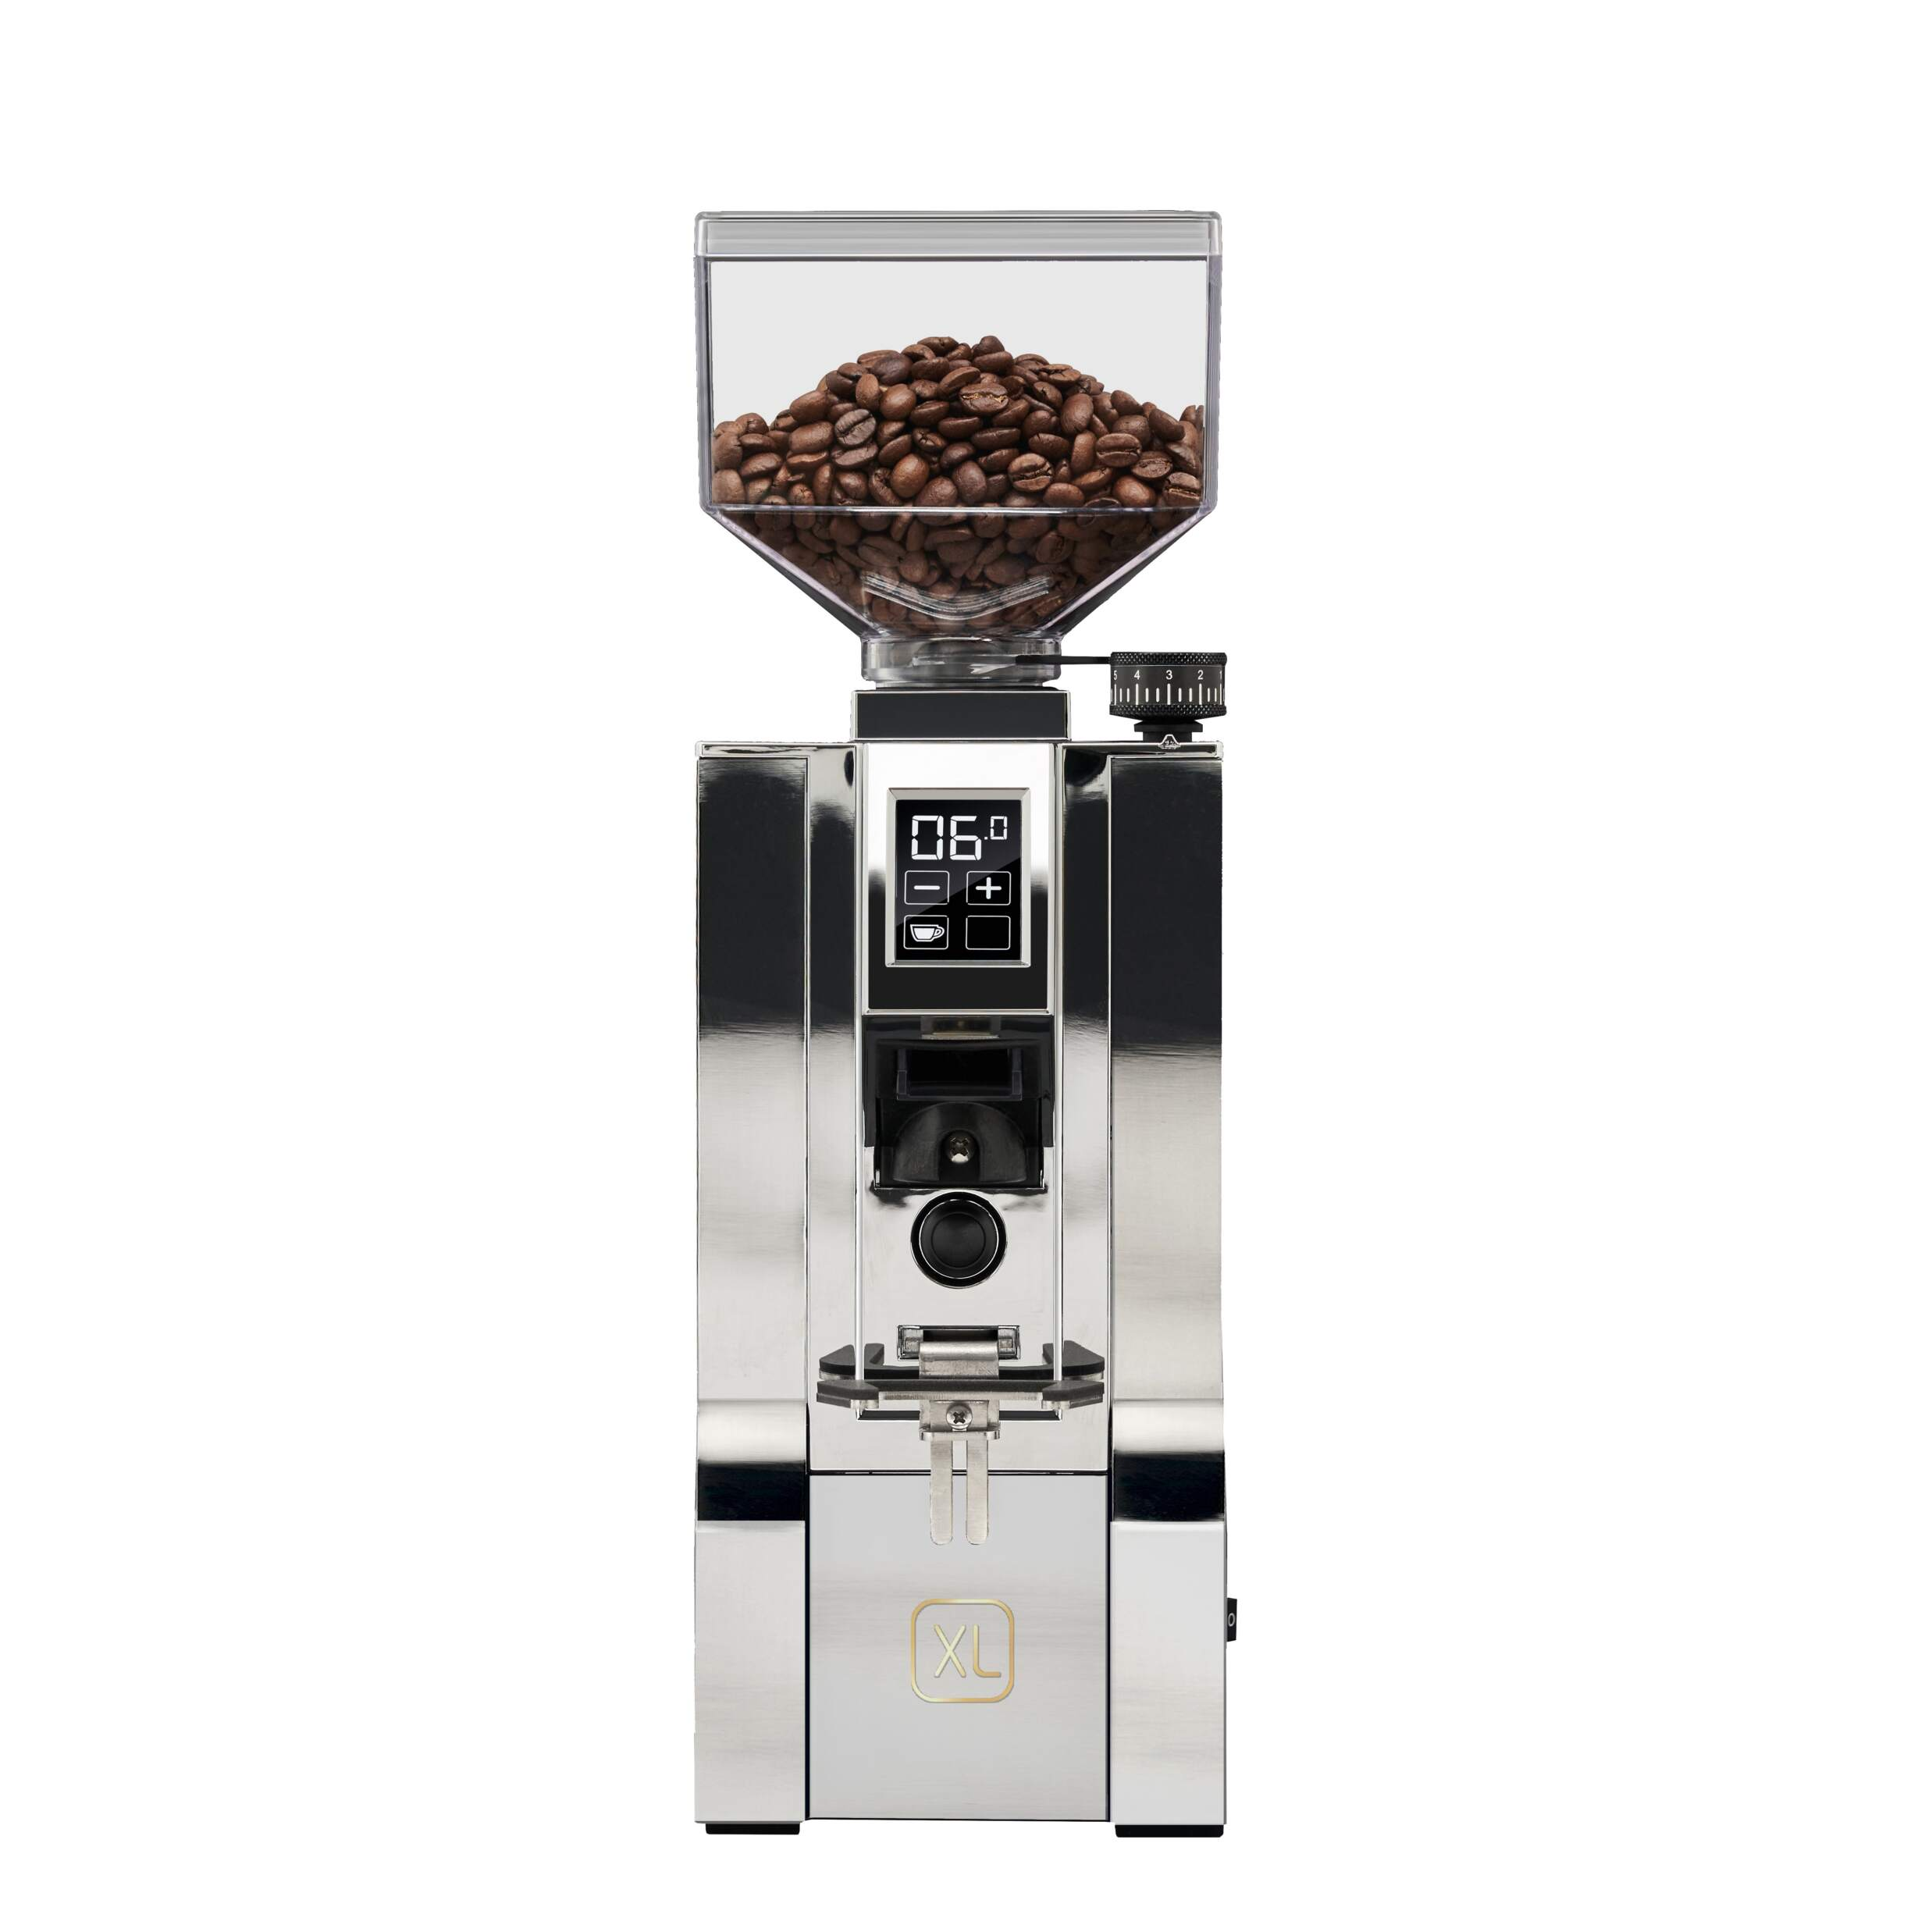 https://www.caffetec.nl/wp-content/uploads/2021/03/Mignon-XL_cromo_frontale-scaled.jpg